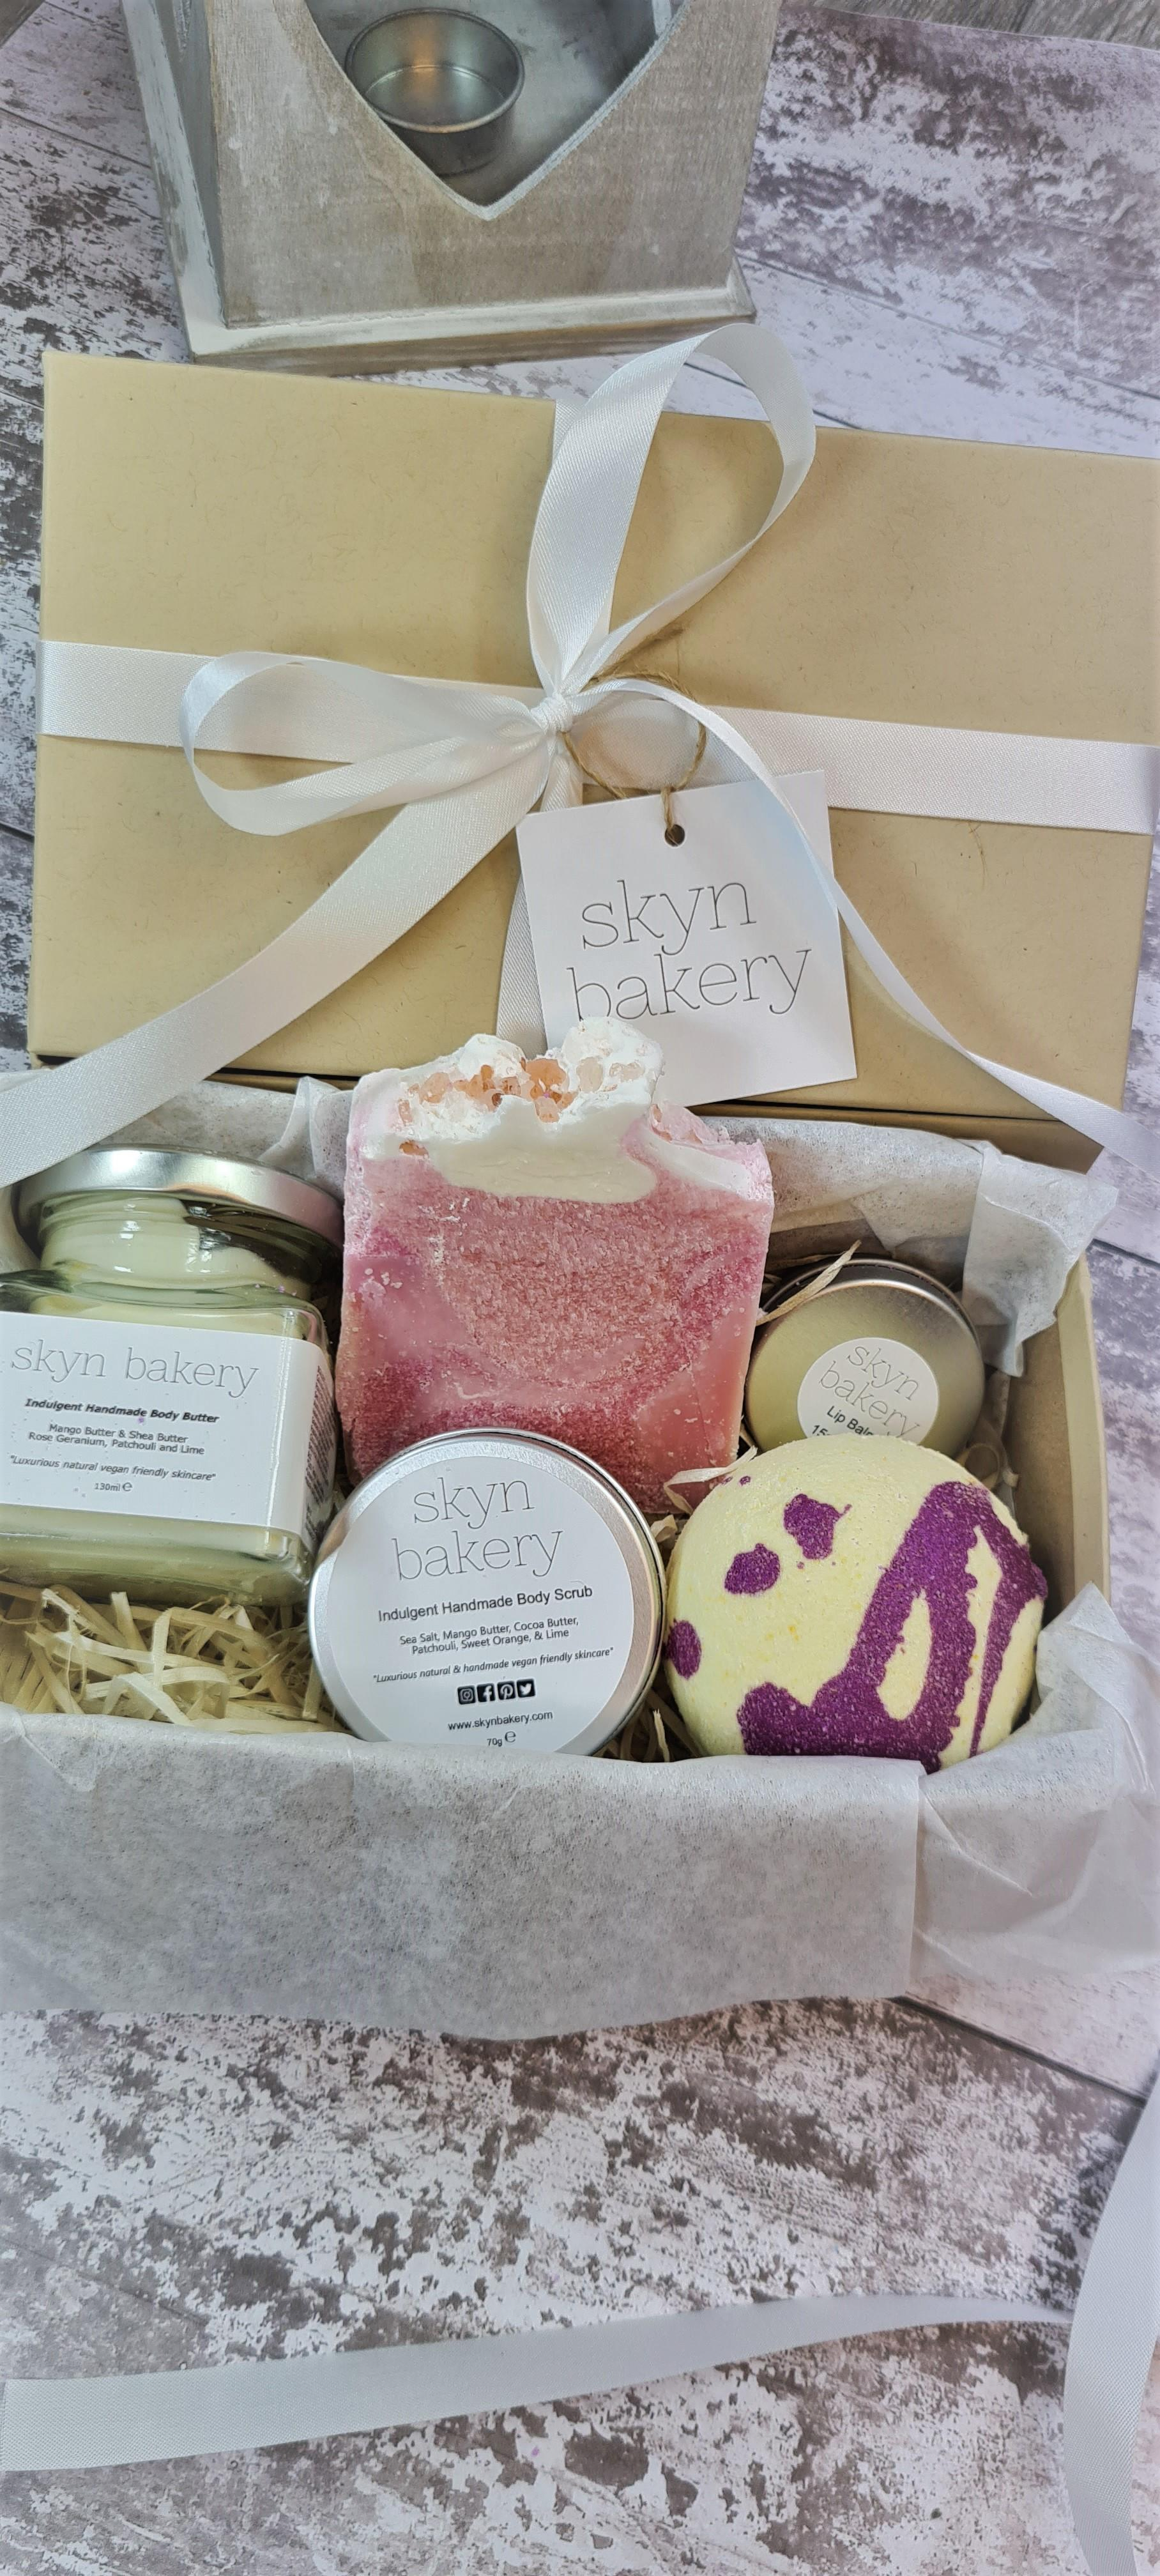 Gift Set Containing Body Scrub, Body Butter, Handmade Soap And Lip Balm in Plastic Free Packaging